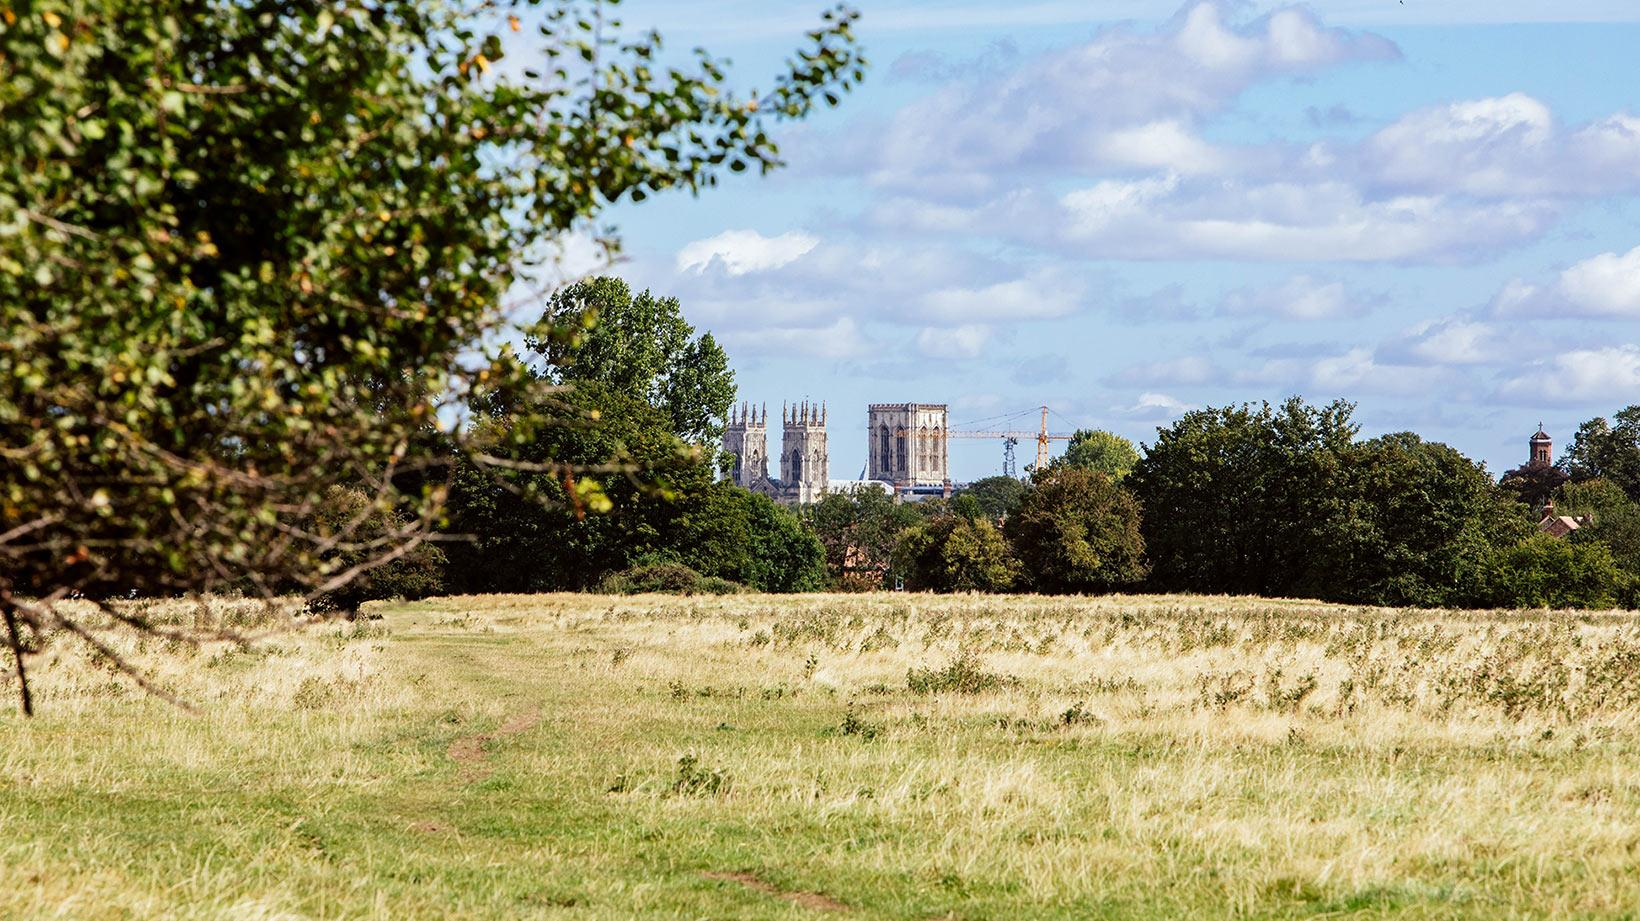 An image of a wood and a field. York cathedral can be seen in the distance.